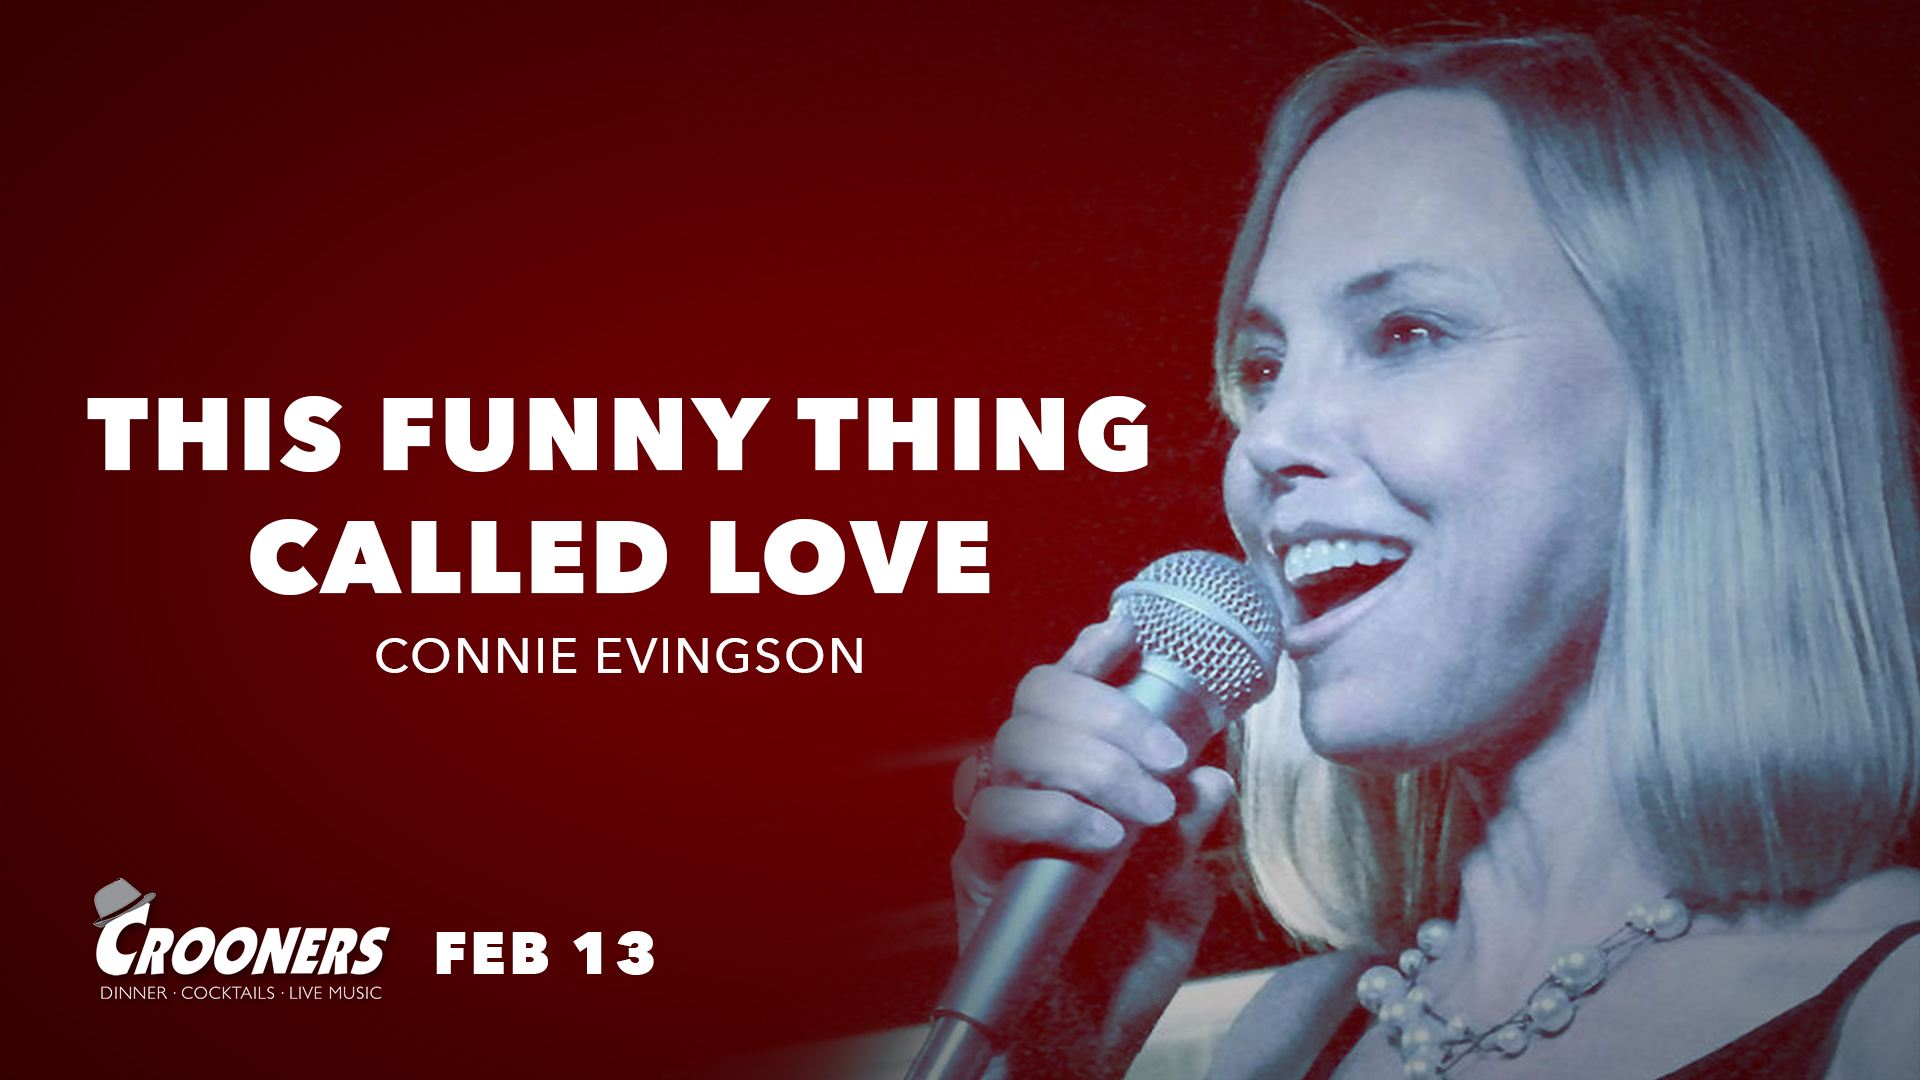 """This Funny Thing Called Love - A romantic Valentine's show with jazz vocalist Connie Evingson will put us all in the mood for love. She's a staple of the local jazz scene, with shows at the Jungle, and regular appearances at Crooners. It's time for us all to get a little closer, with the Minnesota born-and-raised """"A Prairie Home Companion"""" alum as our guide and inspiration."""